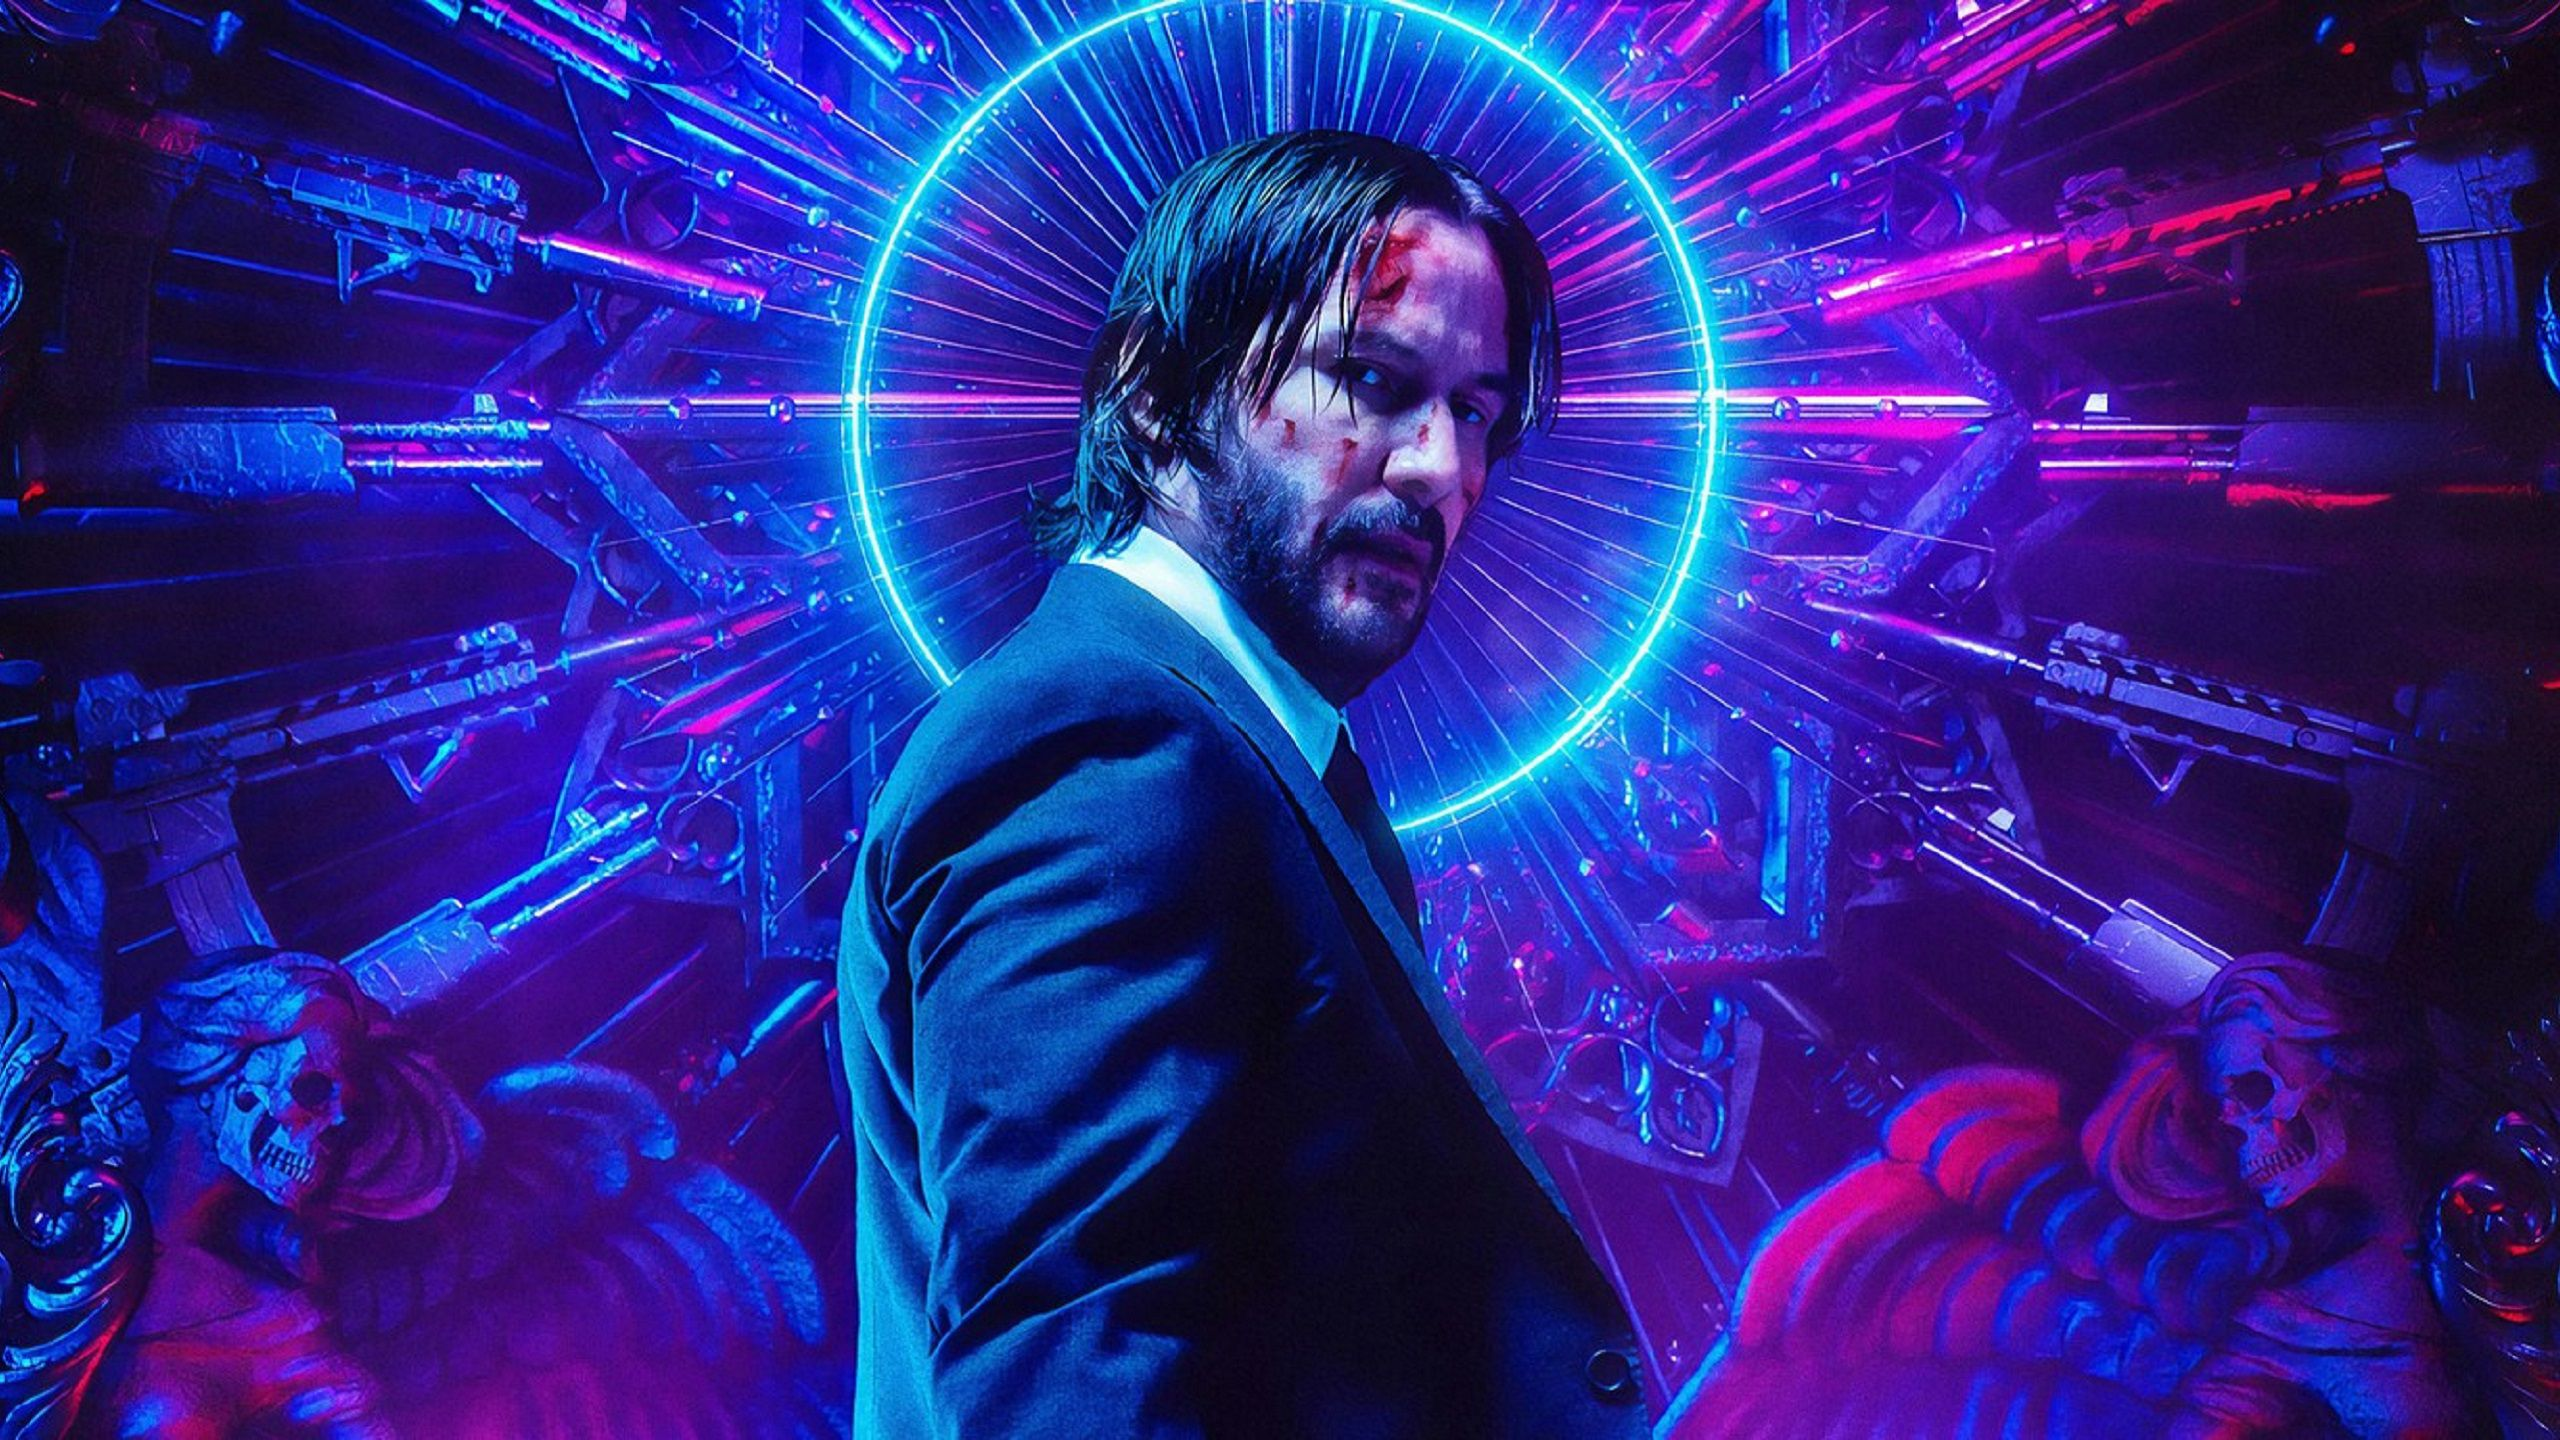 John Wick Chapter 3 Parabellum (2019) with Keanu Reeves